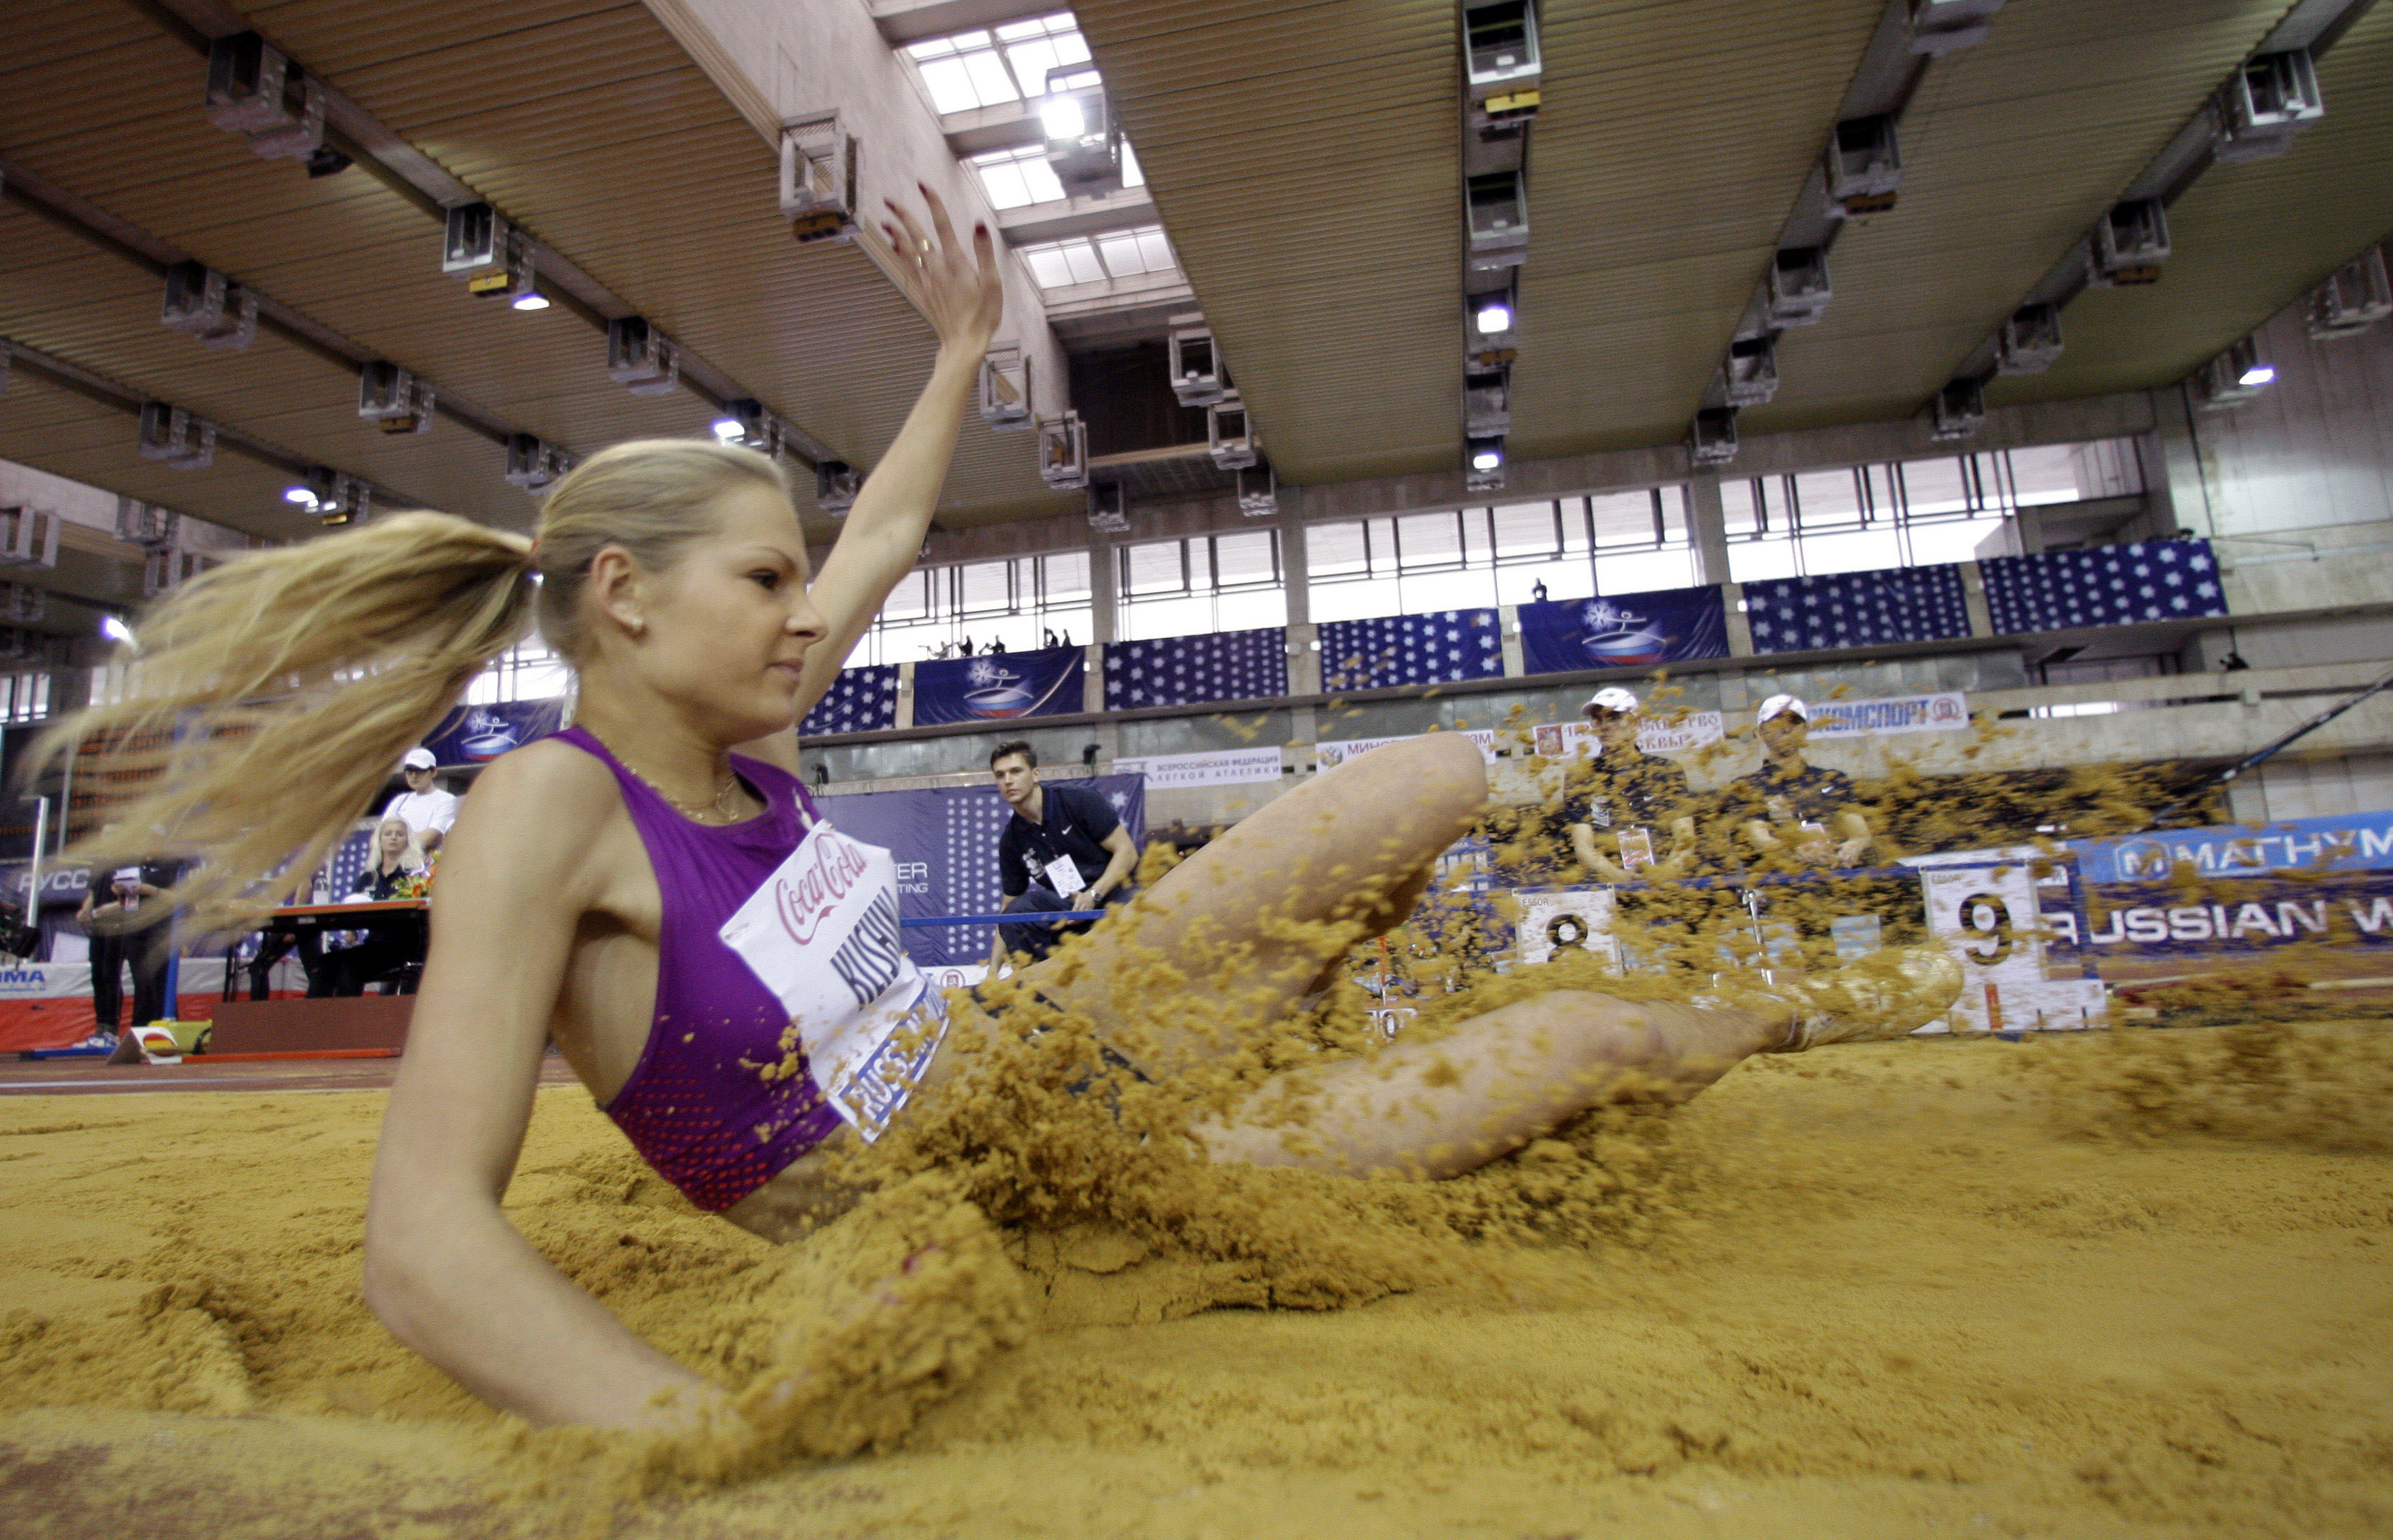 FILE - In this Sunday Feb. 6, 2011 file photo, Russia's Daria Klishina lands in the sand during a long jump event at the Russian Winter IAAF Indoor Athletic championship in Moscow. The IAAF said Sunday, July 10, 2016, that U.S.-based Russian long jumper D